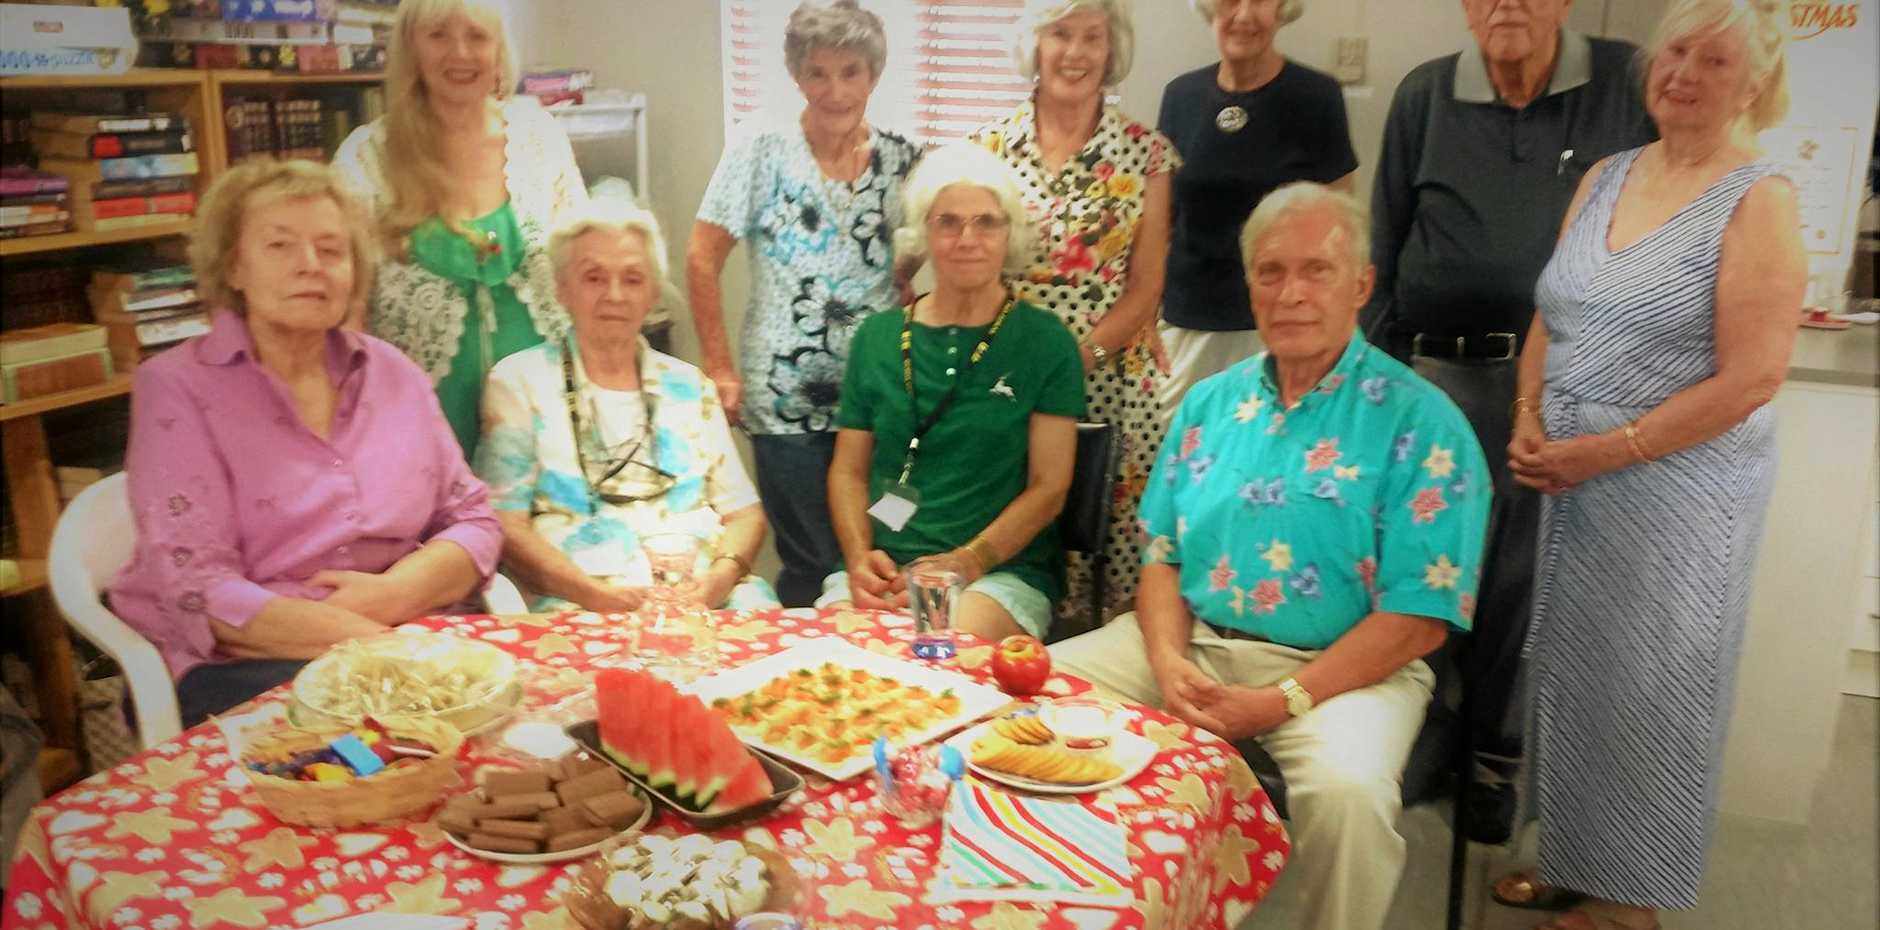 LEARN AND HAVE FUN: Students and Tutors at U3A Twin Towns enjoying a morning tea together and enjoying social activites.